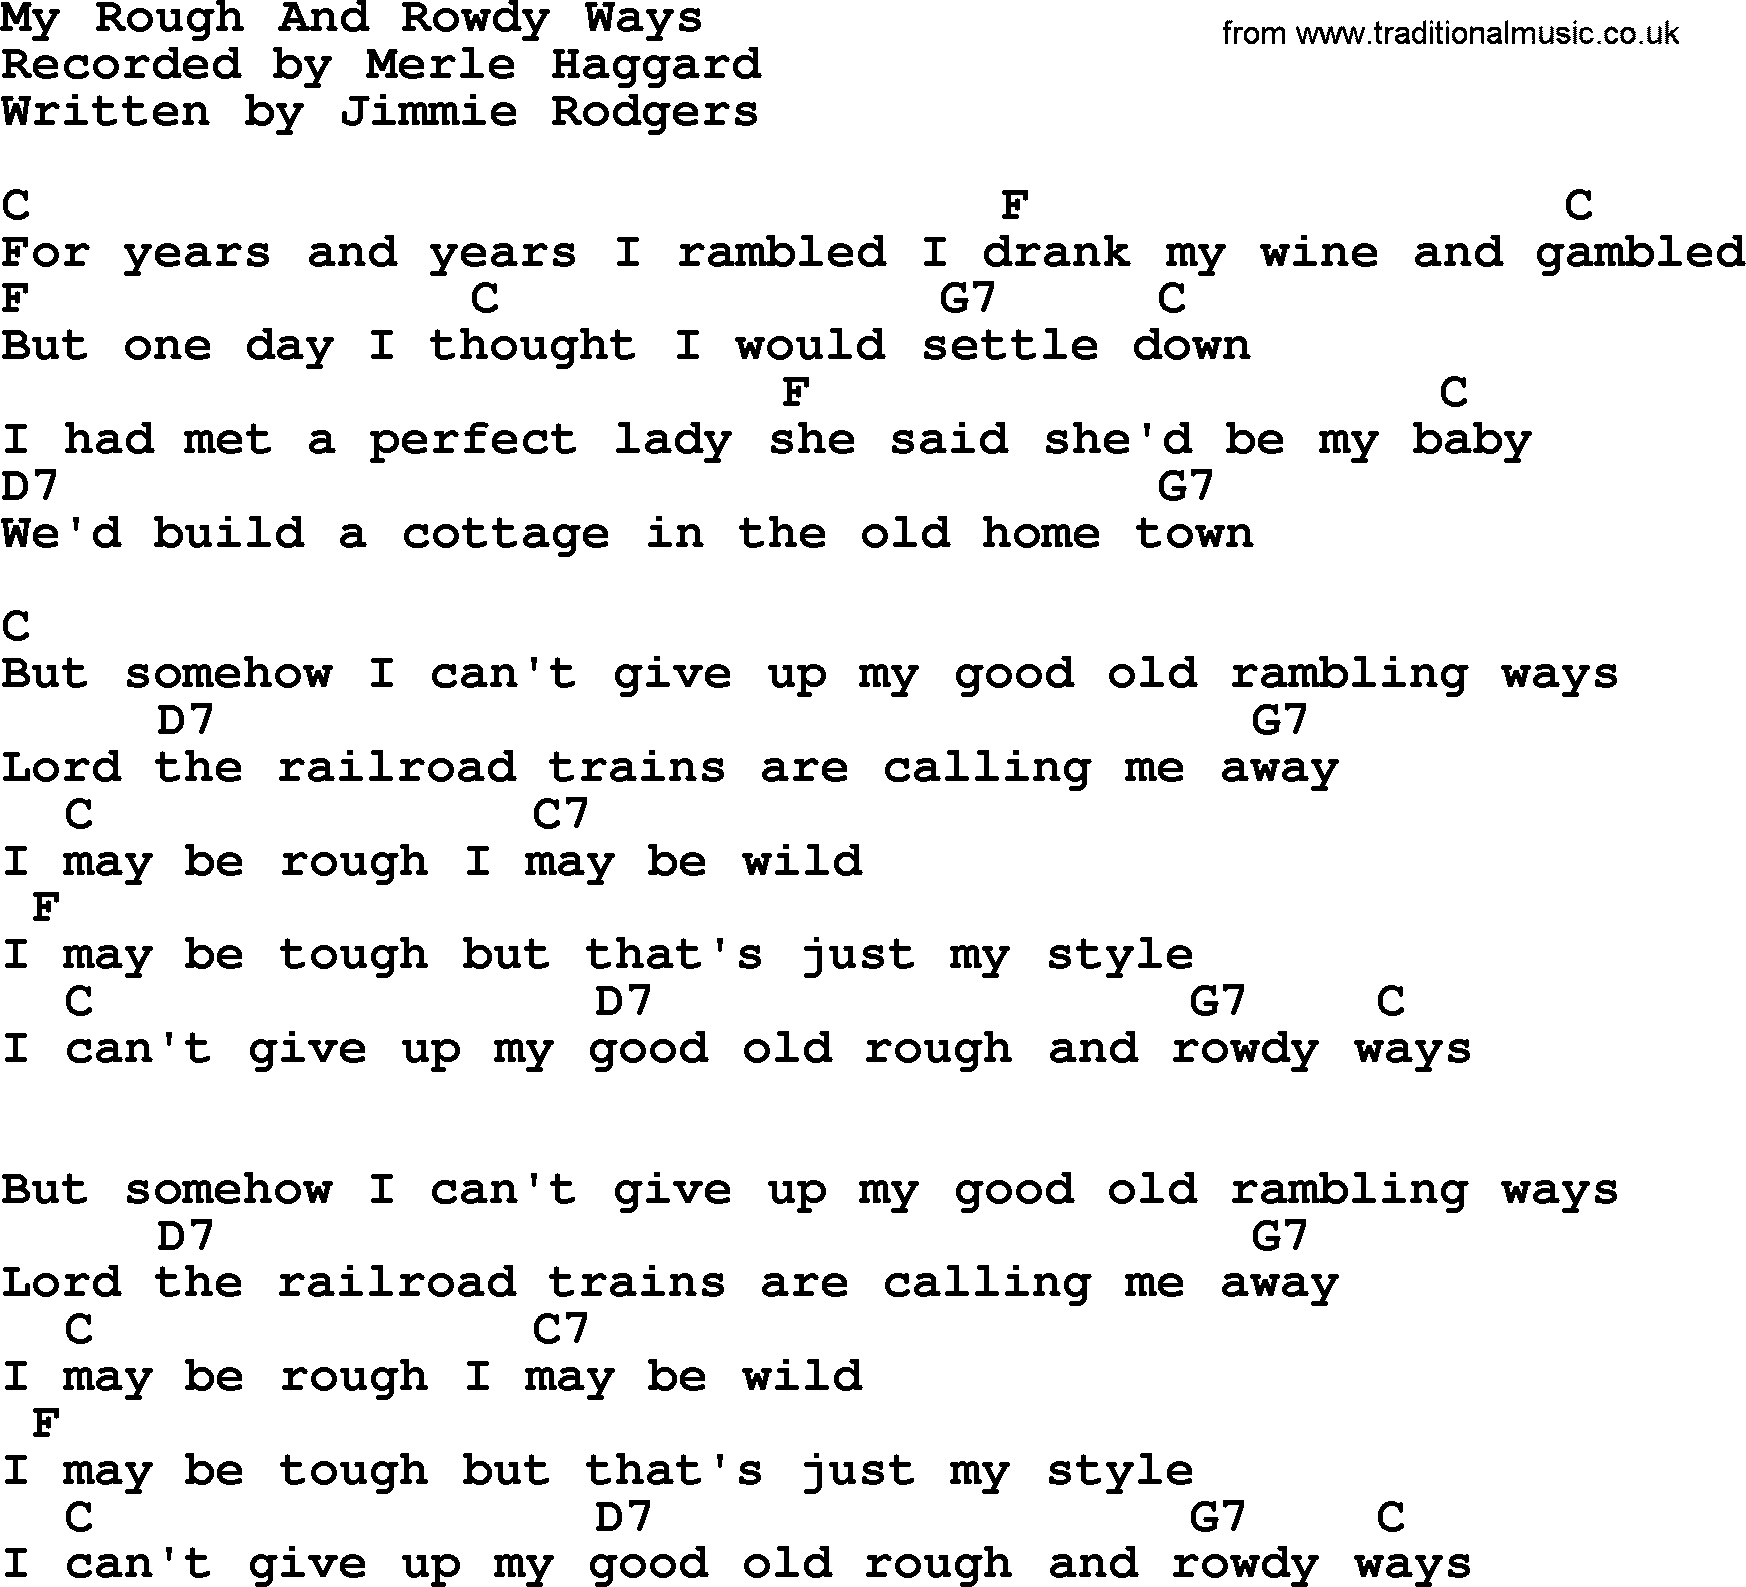 My rough and rowdy ways by merle haggard lyrics and chords merle haggard song my rough and rowdy ways lyrics and chords hexwebz Choice Image